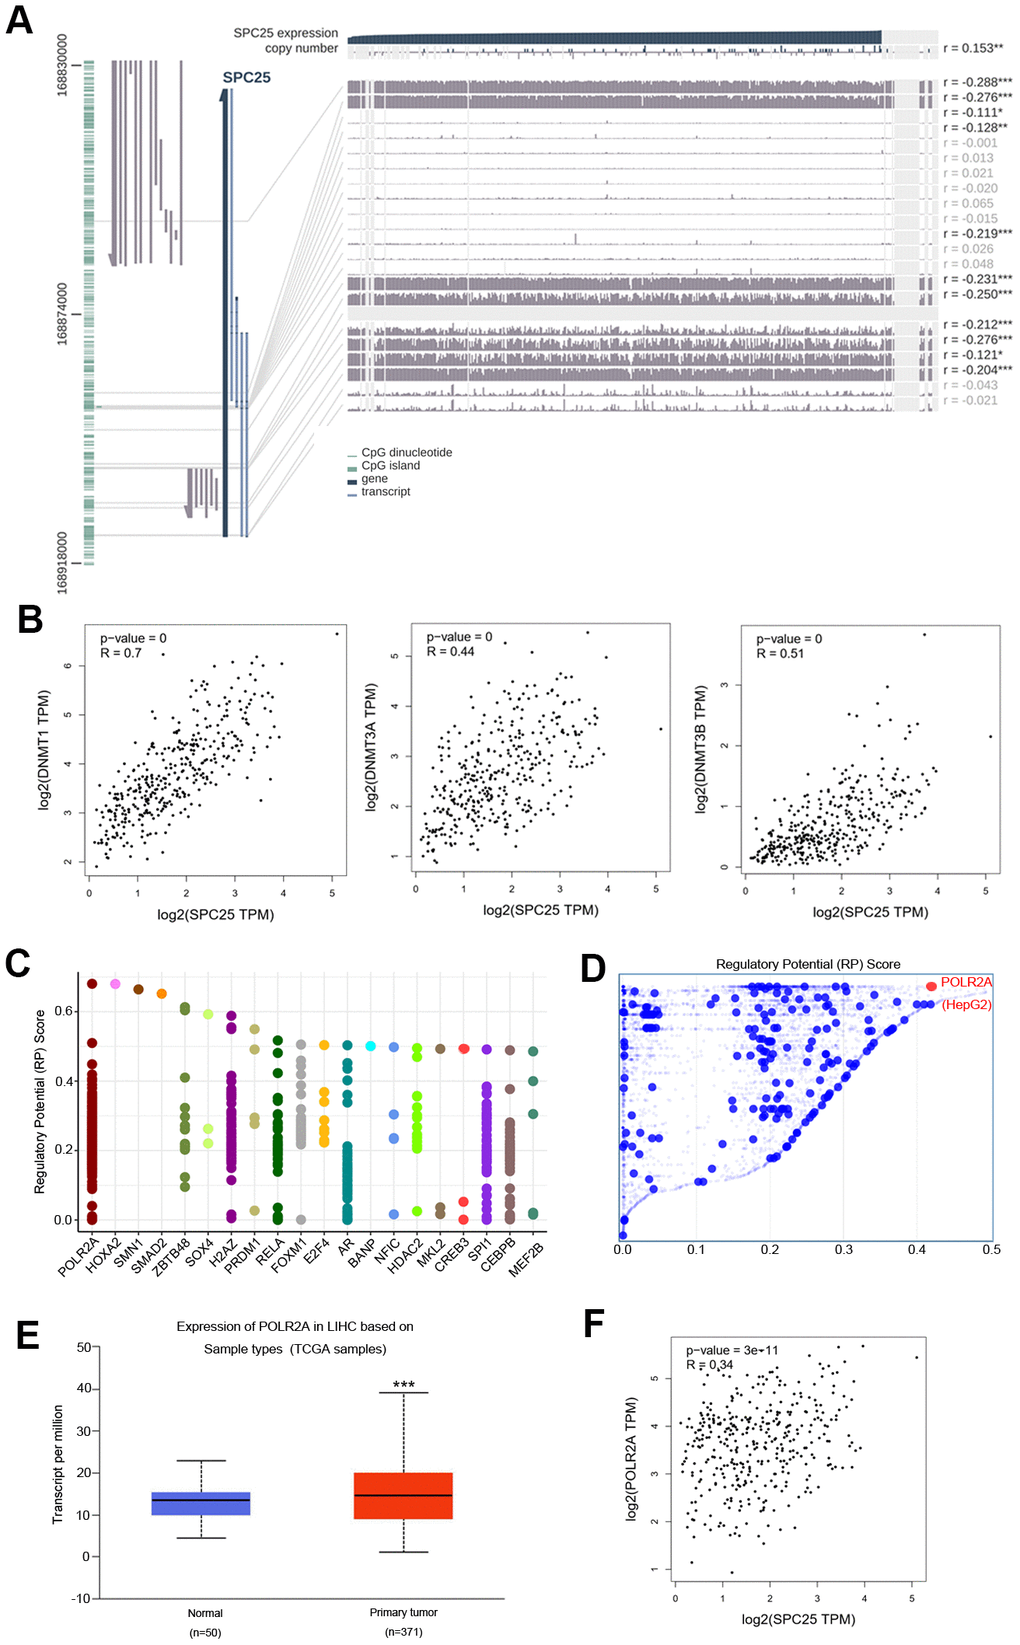 DNA methylation modification and transcription factors associated with SPC25 in HCC. (A) SPC25 DNA methylation modification in HCC. (B) Correlation between SPC25 mRNA expression and DNA methyltransferase (DNMT) expression. (C) Top 20 transcription factors (TFs) that potentially regulate SPC25 in HCC. (D) TFs with high regulatory potential in HepG2 cell lines (10k distance to transcription start site, TSS). (E) POLR2A mRNA expression is significantly higher in HCC samples than in normal samples. (F) Correlation between SPC25 and POLR2A mRNA expression. (*P